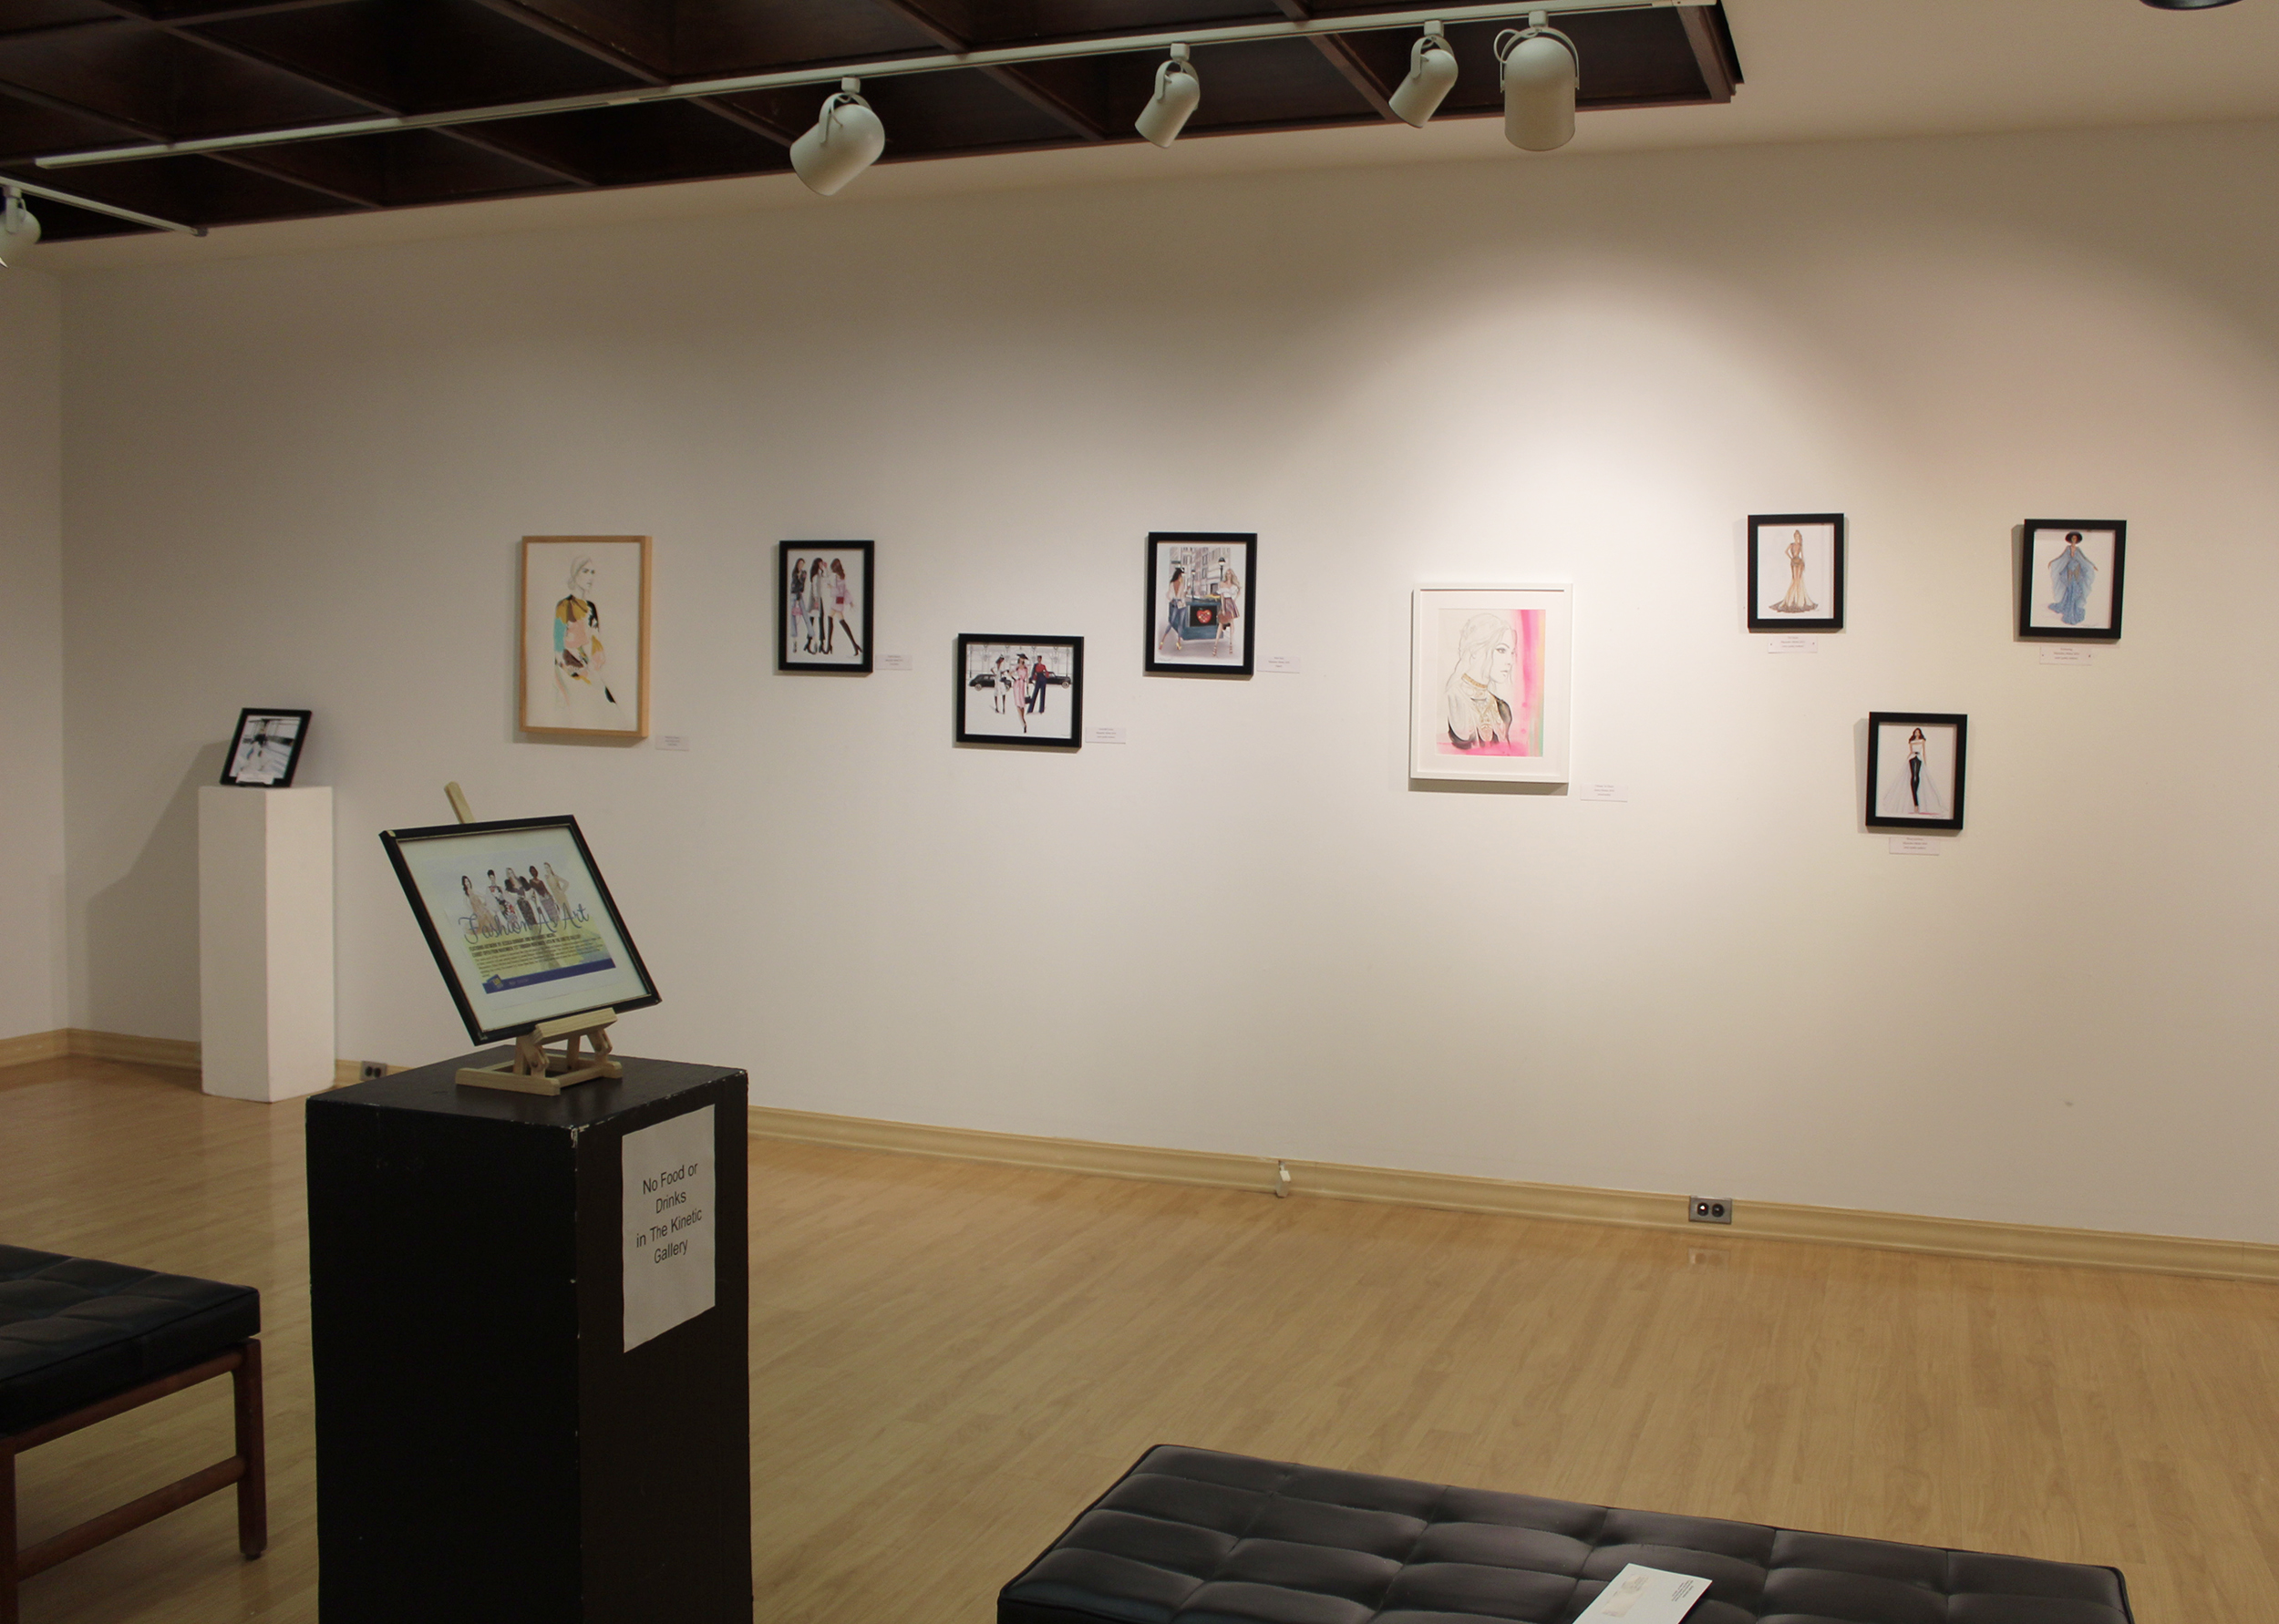 """The """"Fashion as Art"""" exhibit in the Kinetic Gallery (pictured above) opened on Thursday Nov. 1. This collection of illustrations shows fashion can be a form of creative expression (Catherine White/ Editor-in-chief)."""